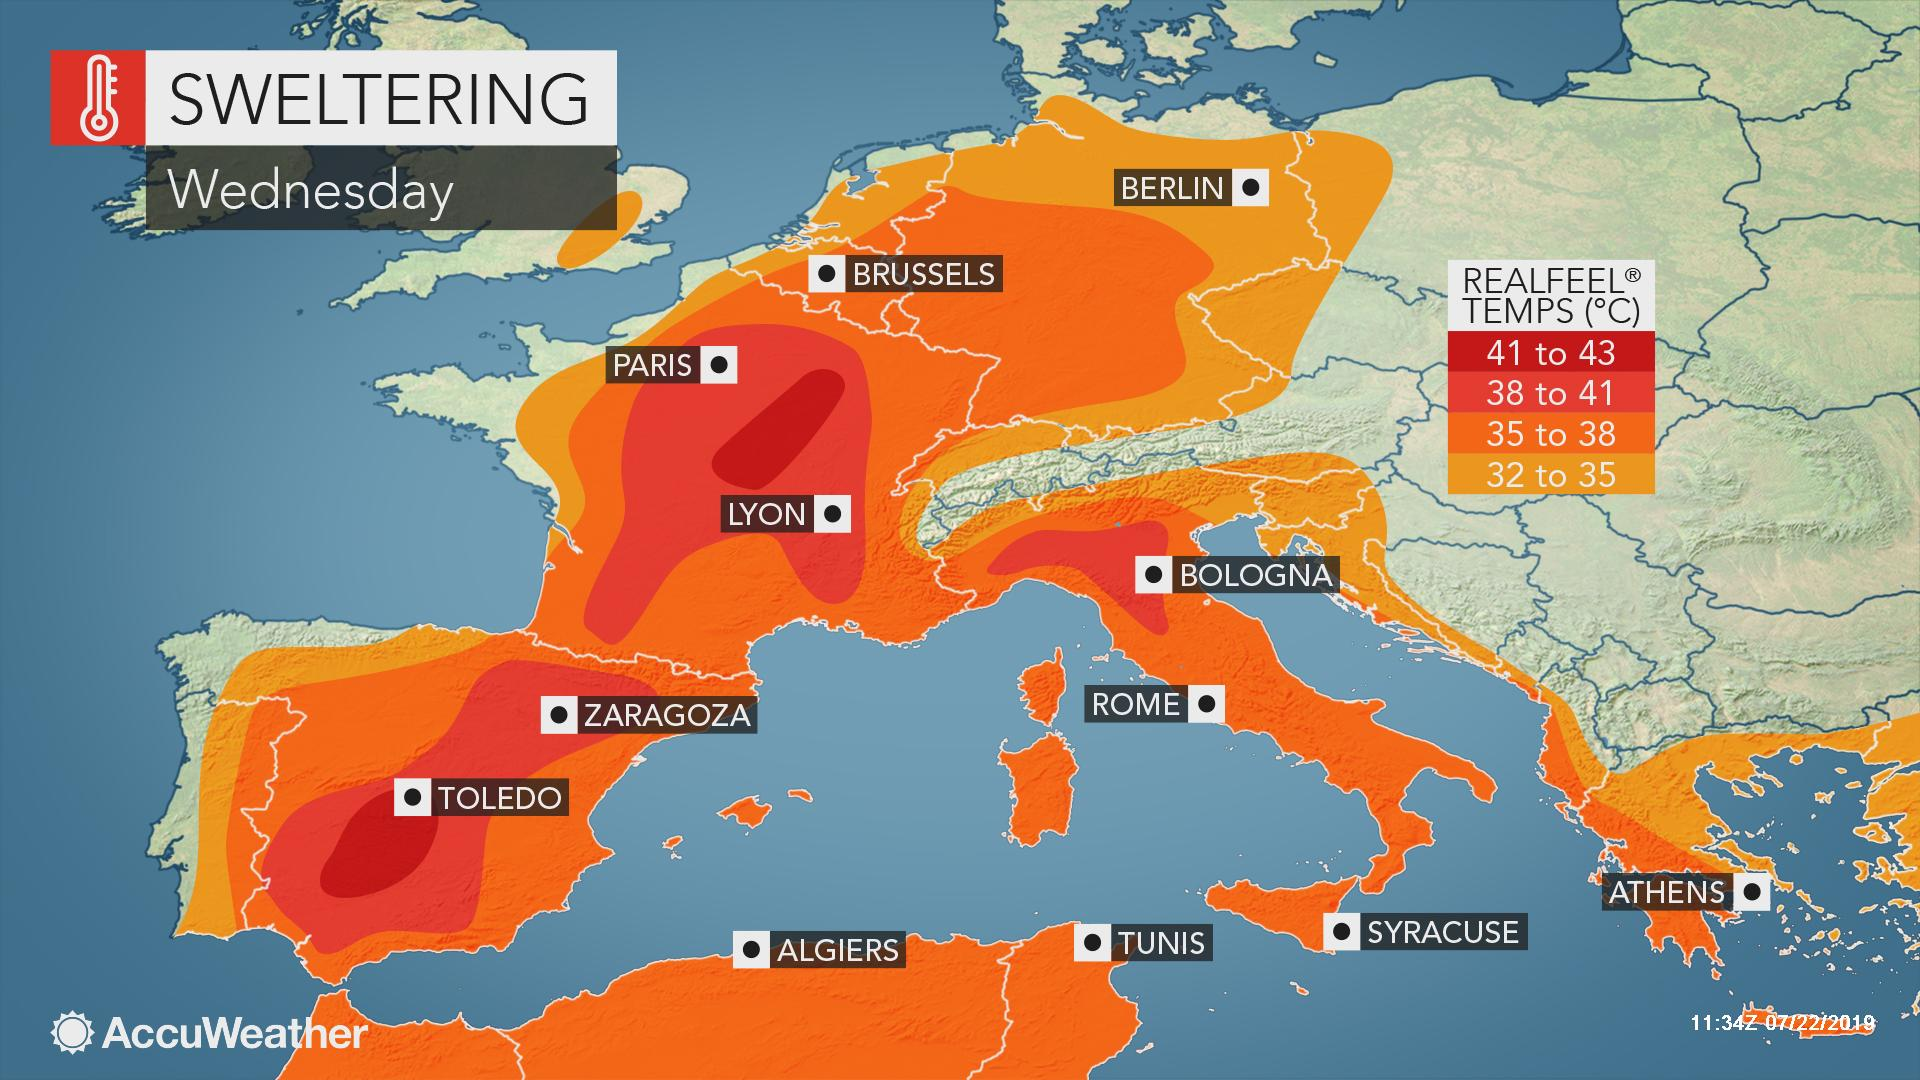 Spain Map Of Europe.Dangerous Heat Wave To Grip Europe From Spain To Germany To Italy